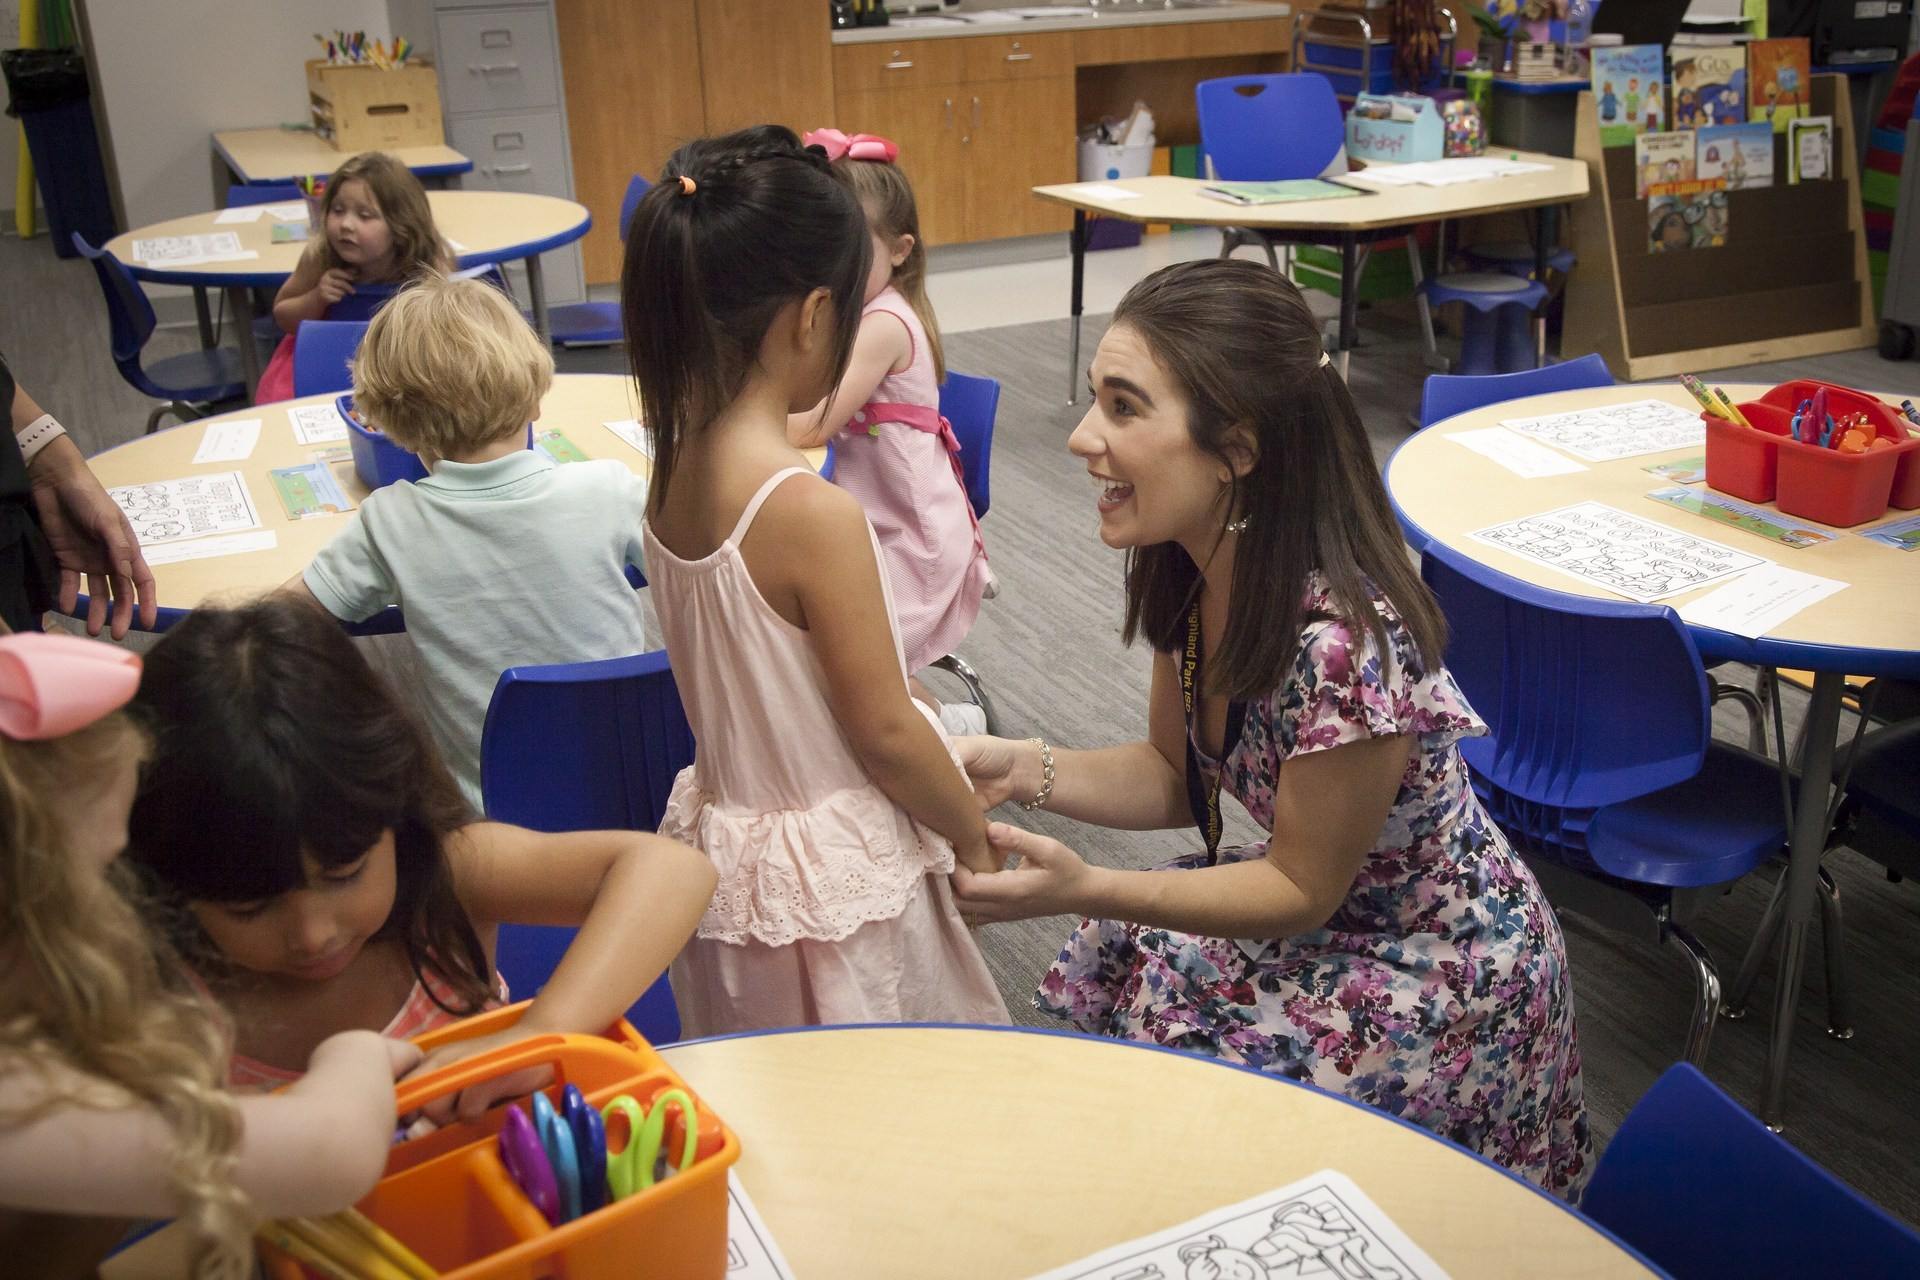 An elementary school teacher visits with a student in the classroom